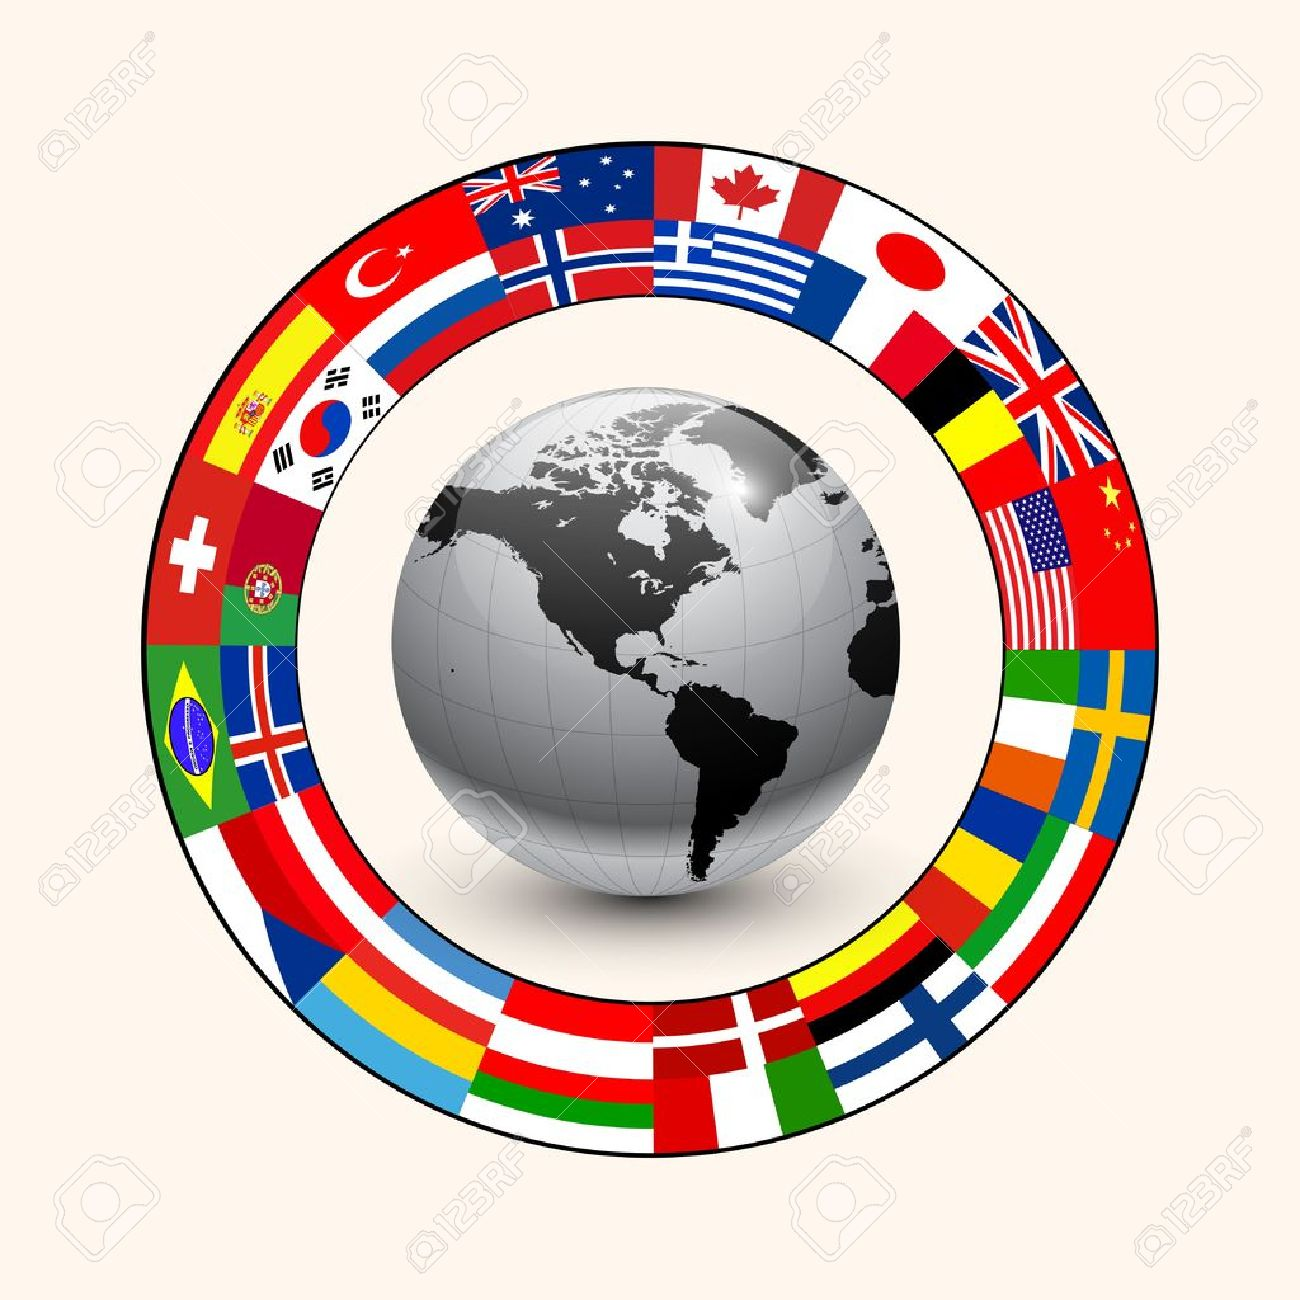 Business background, ring of flags around earth. Stock Vector - 10616525